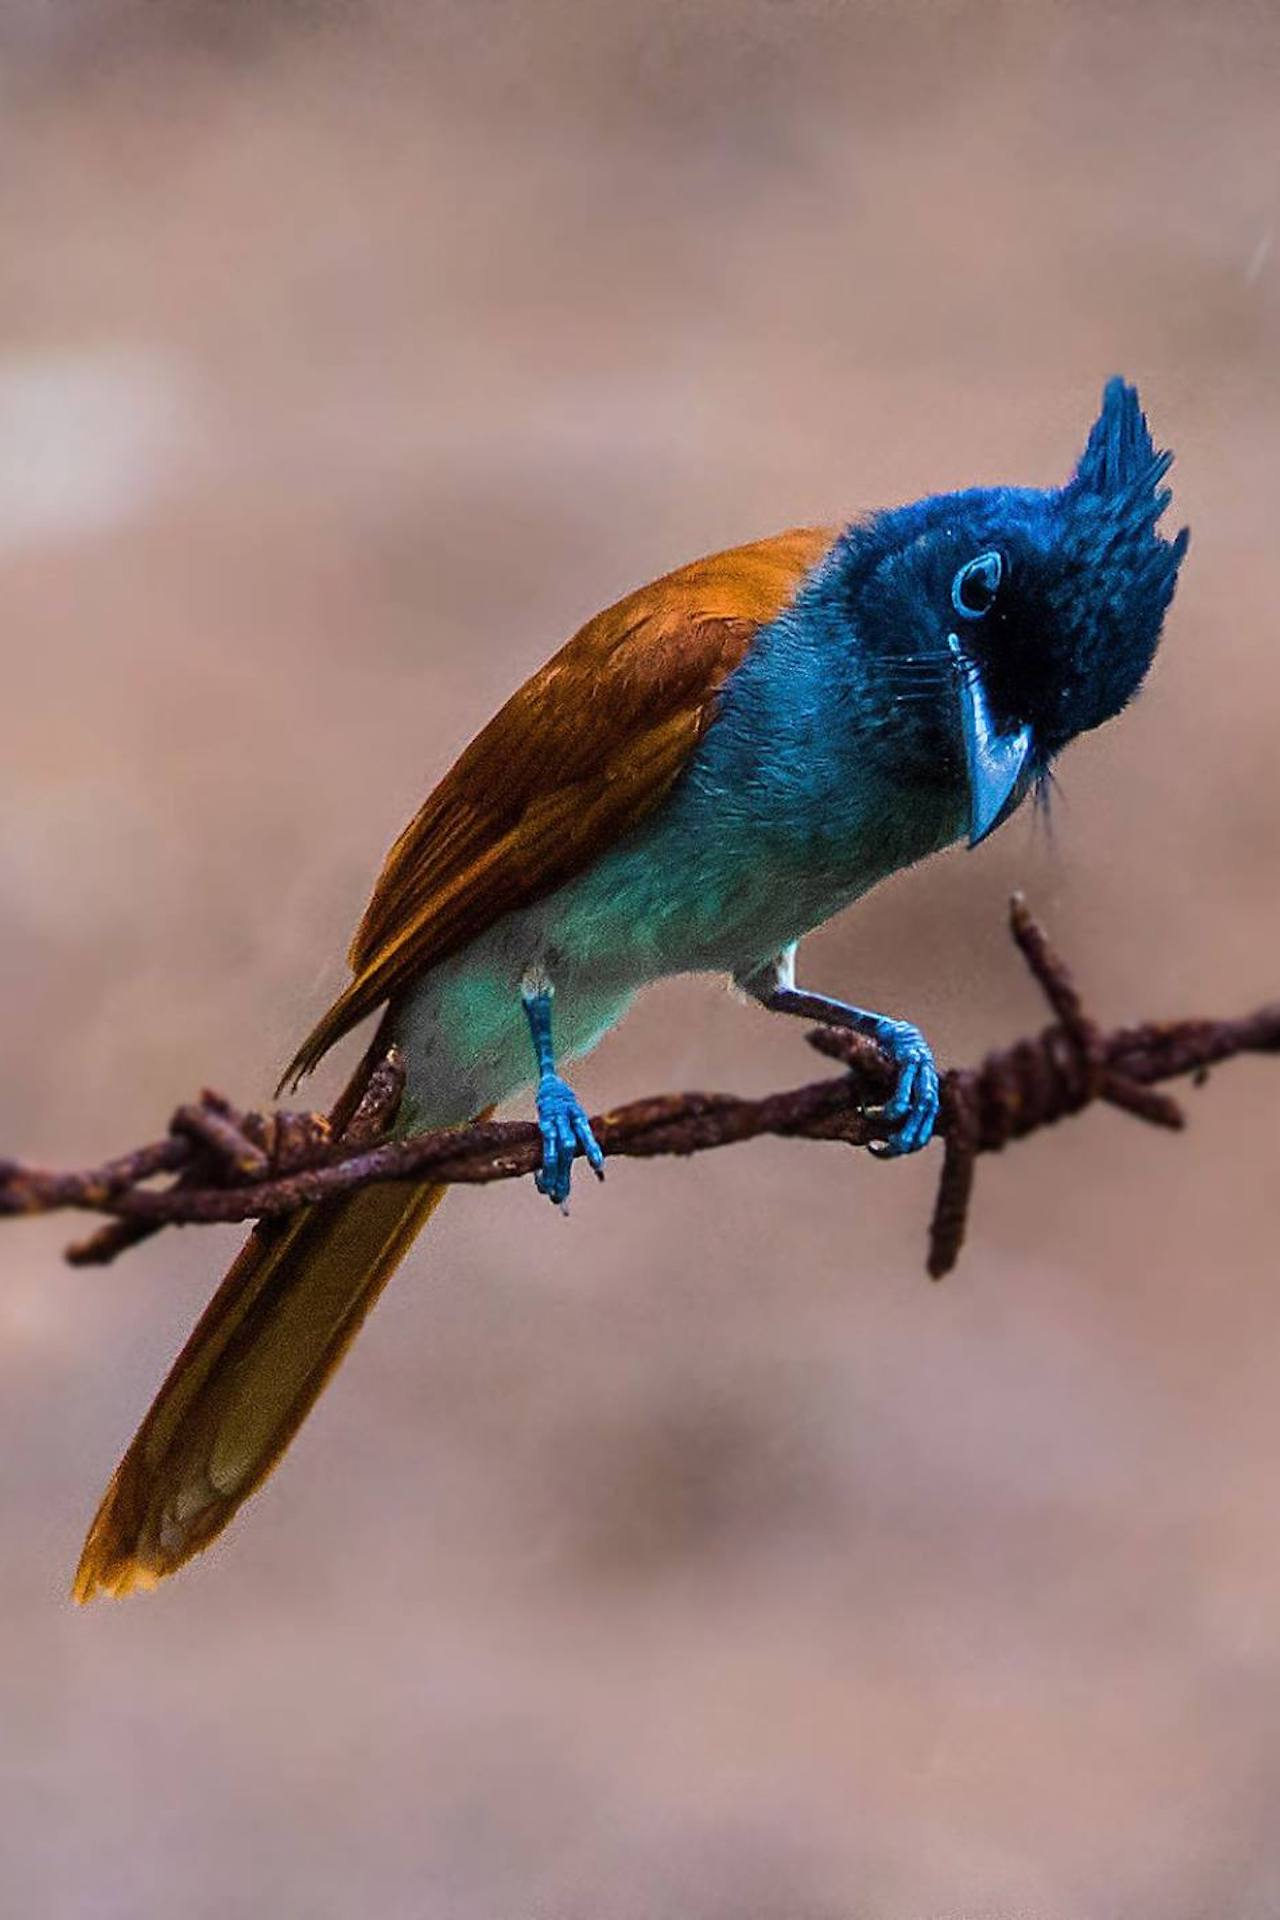 Indian paradise flycatcher sitting on a wire